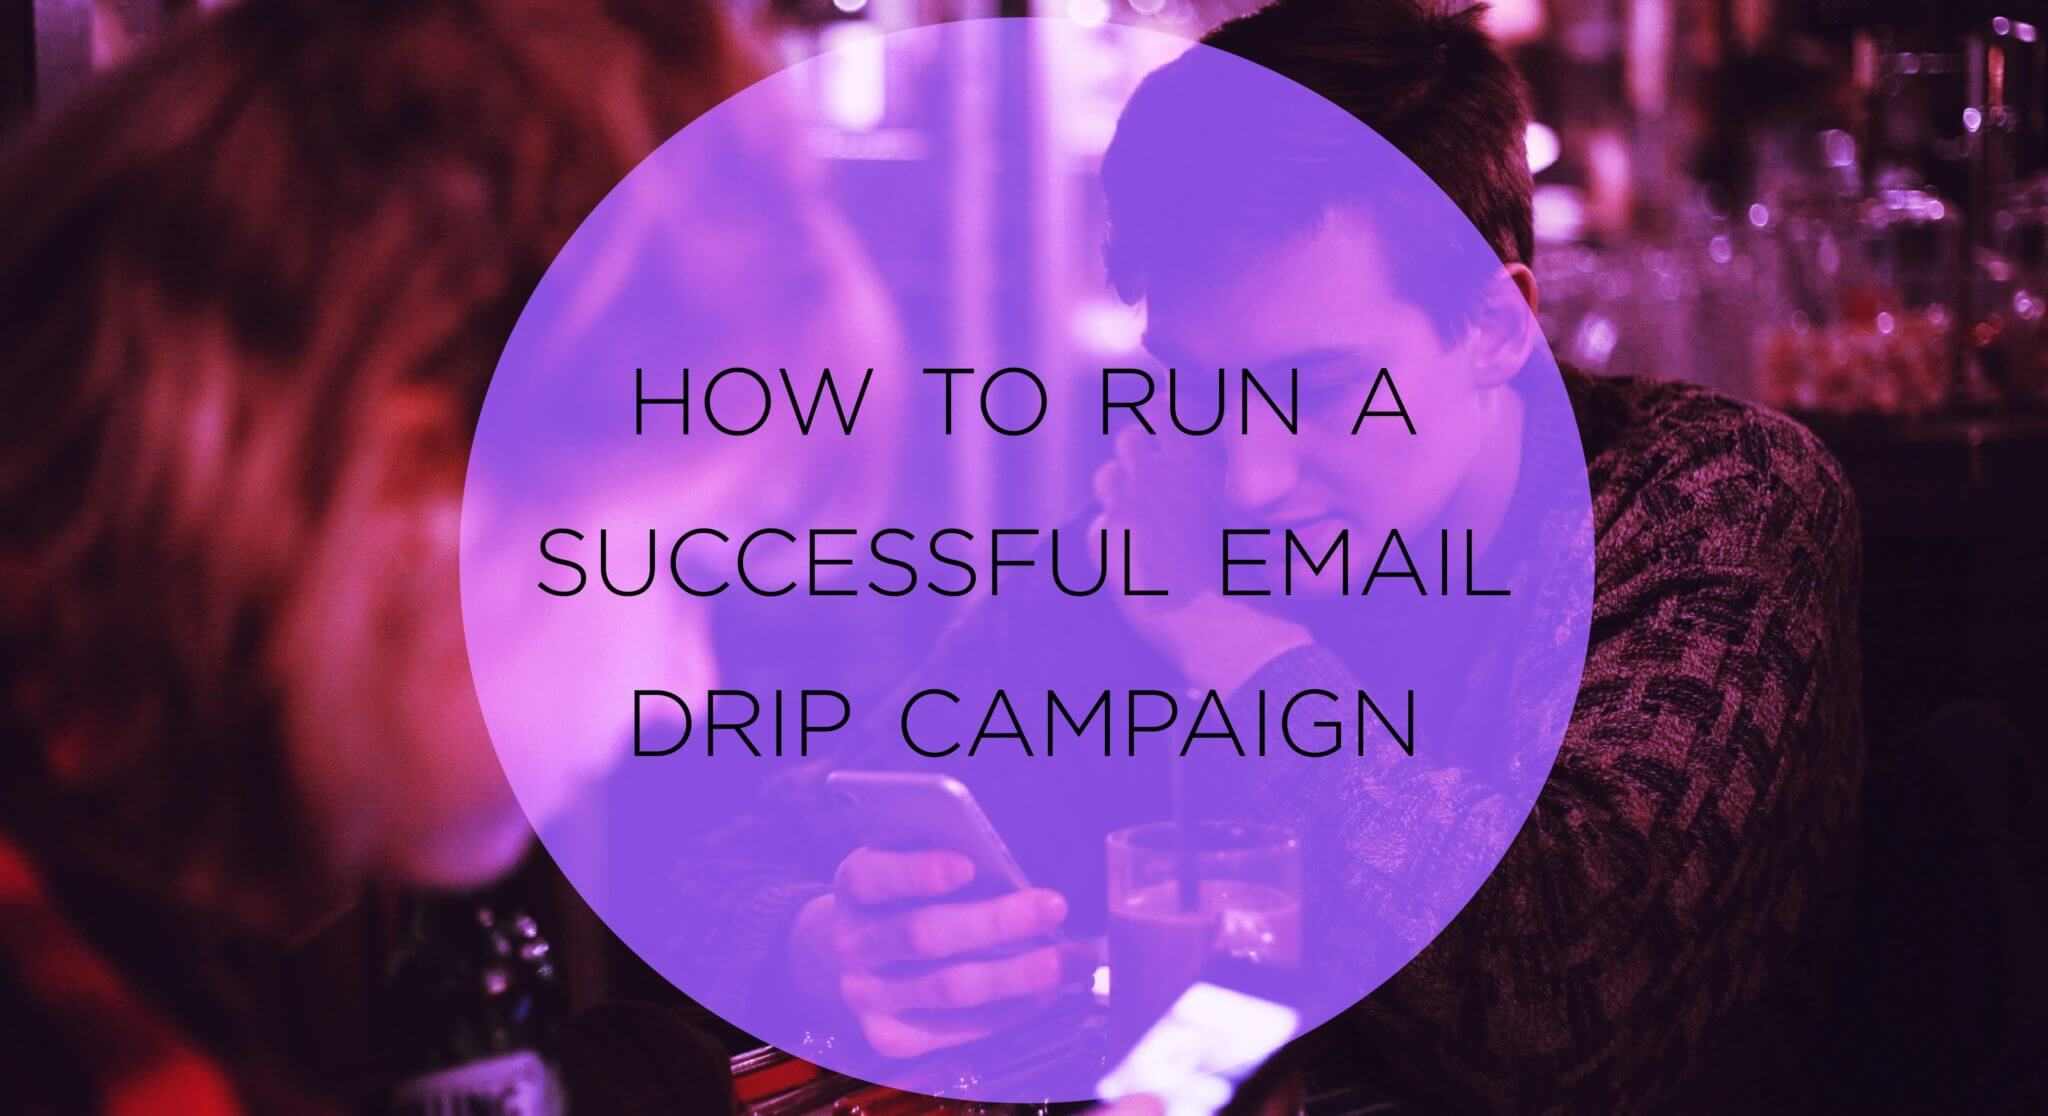 How to Run a Successful Email Drip Campaign